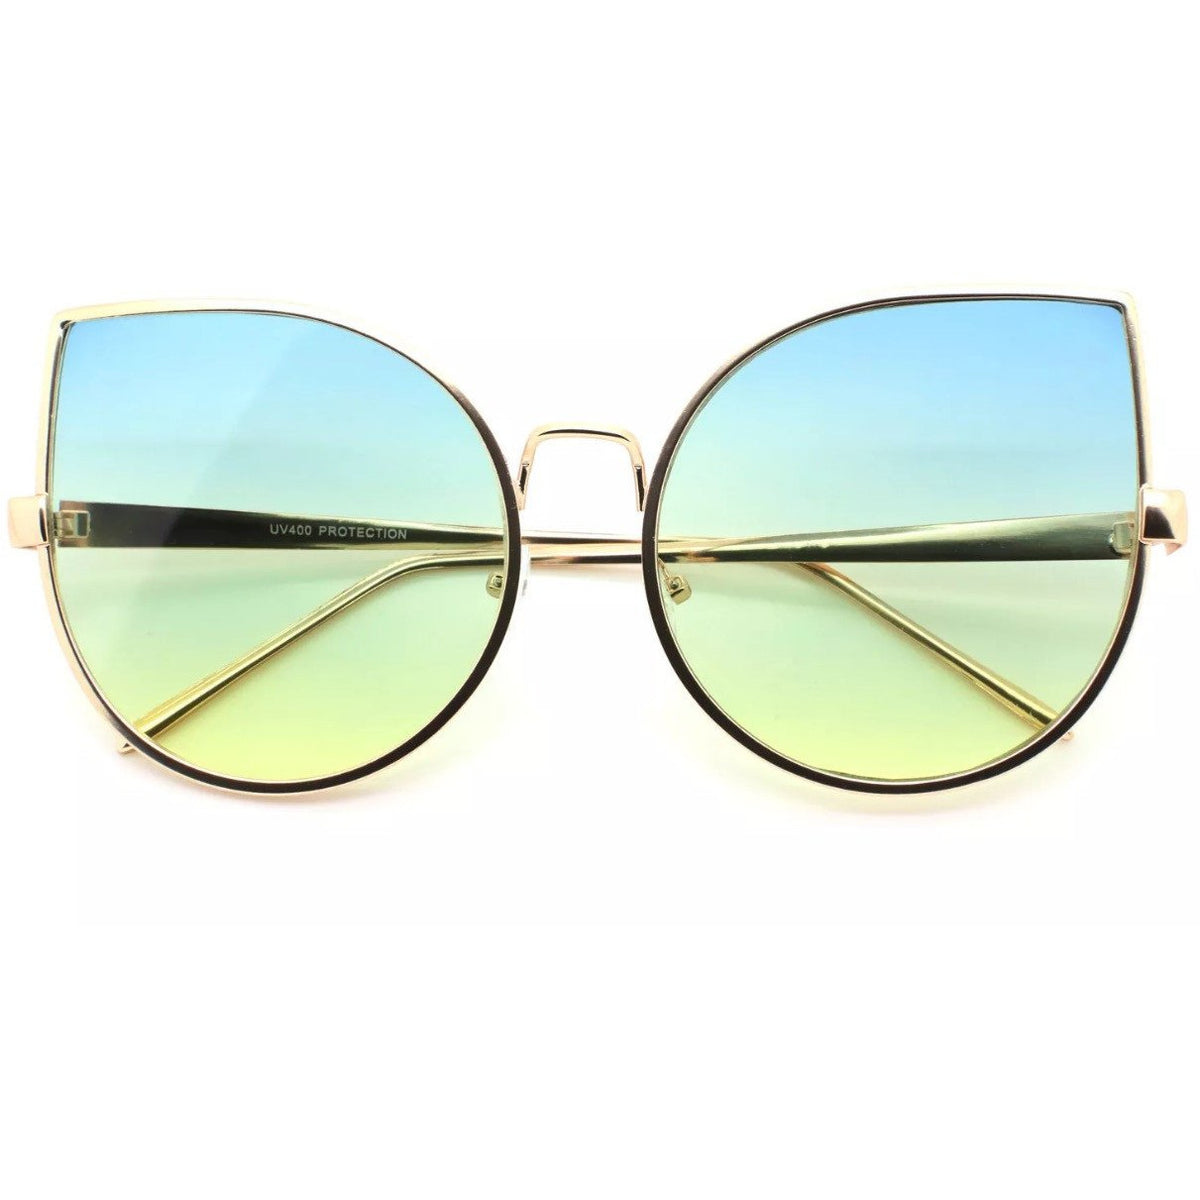 Oversized CatEye Metal Frame Sunglasses Glasses - Poshed Apparel - 4